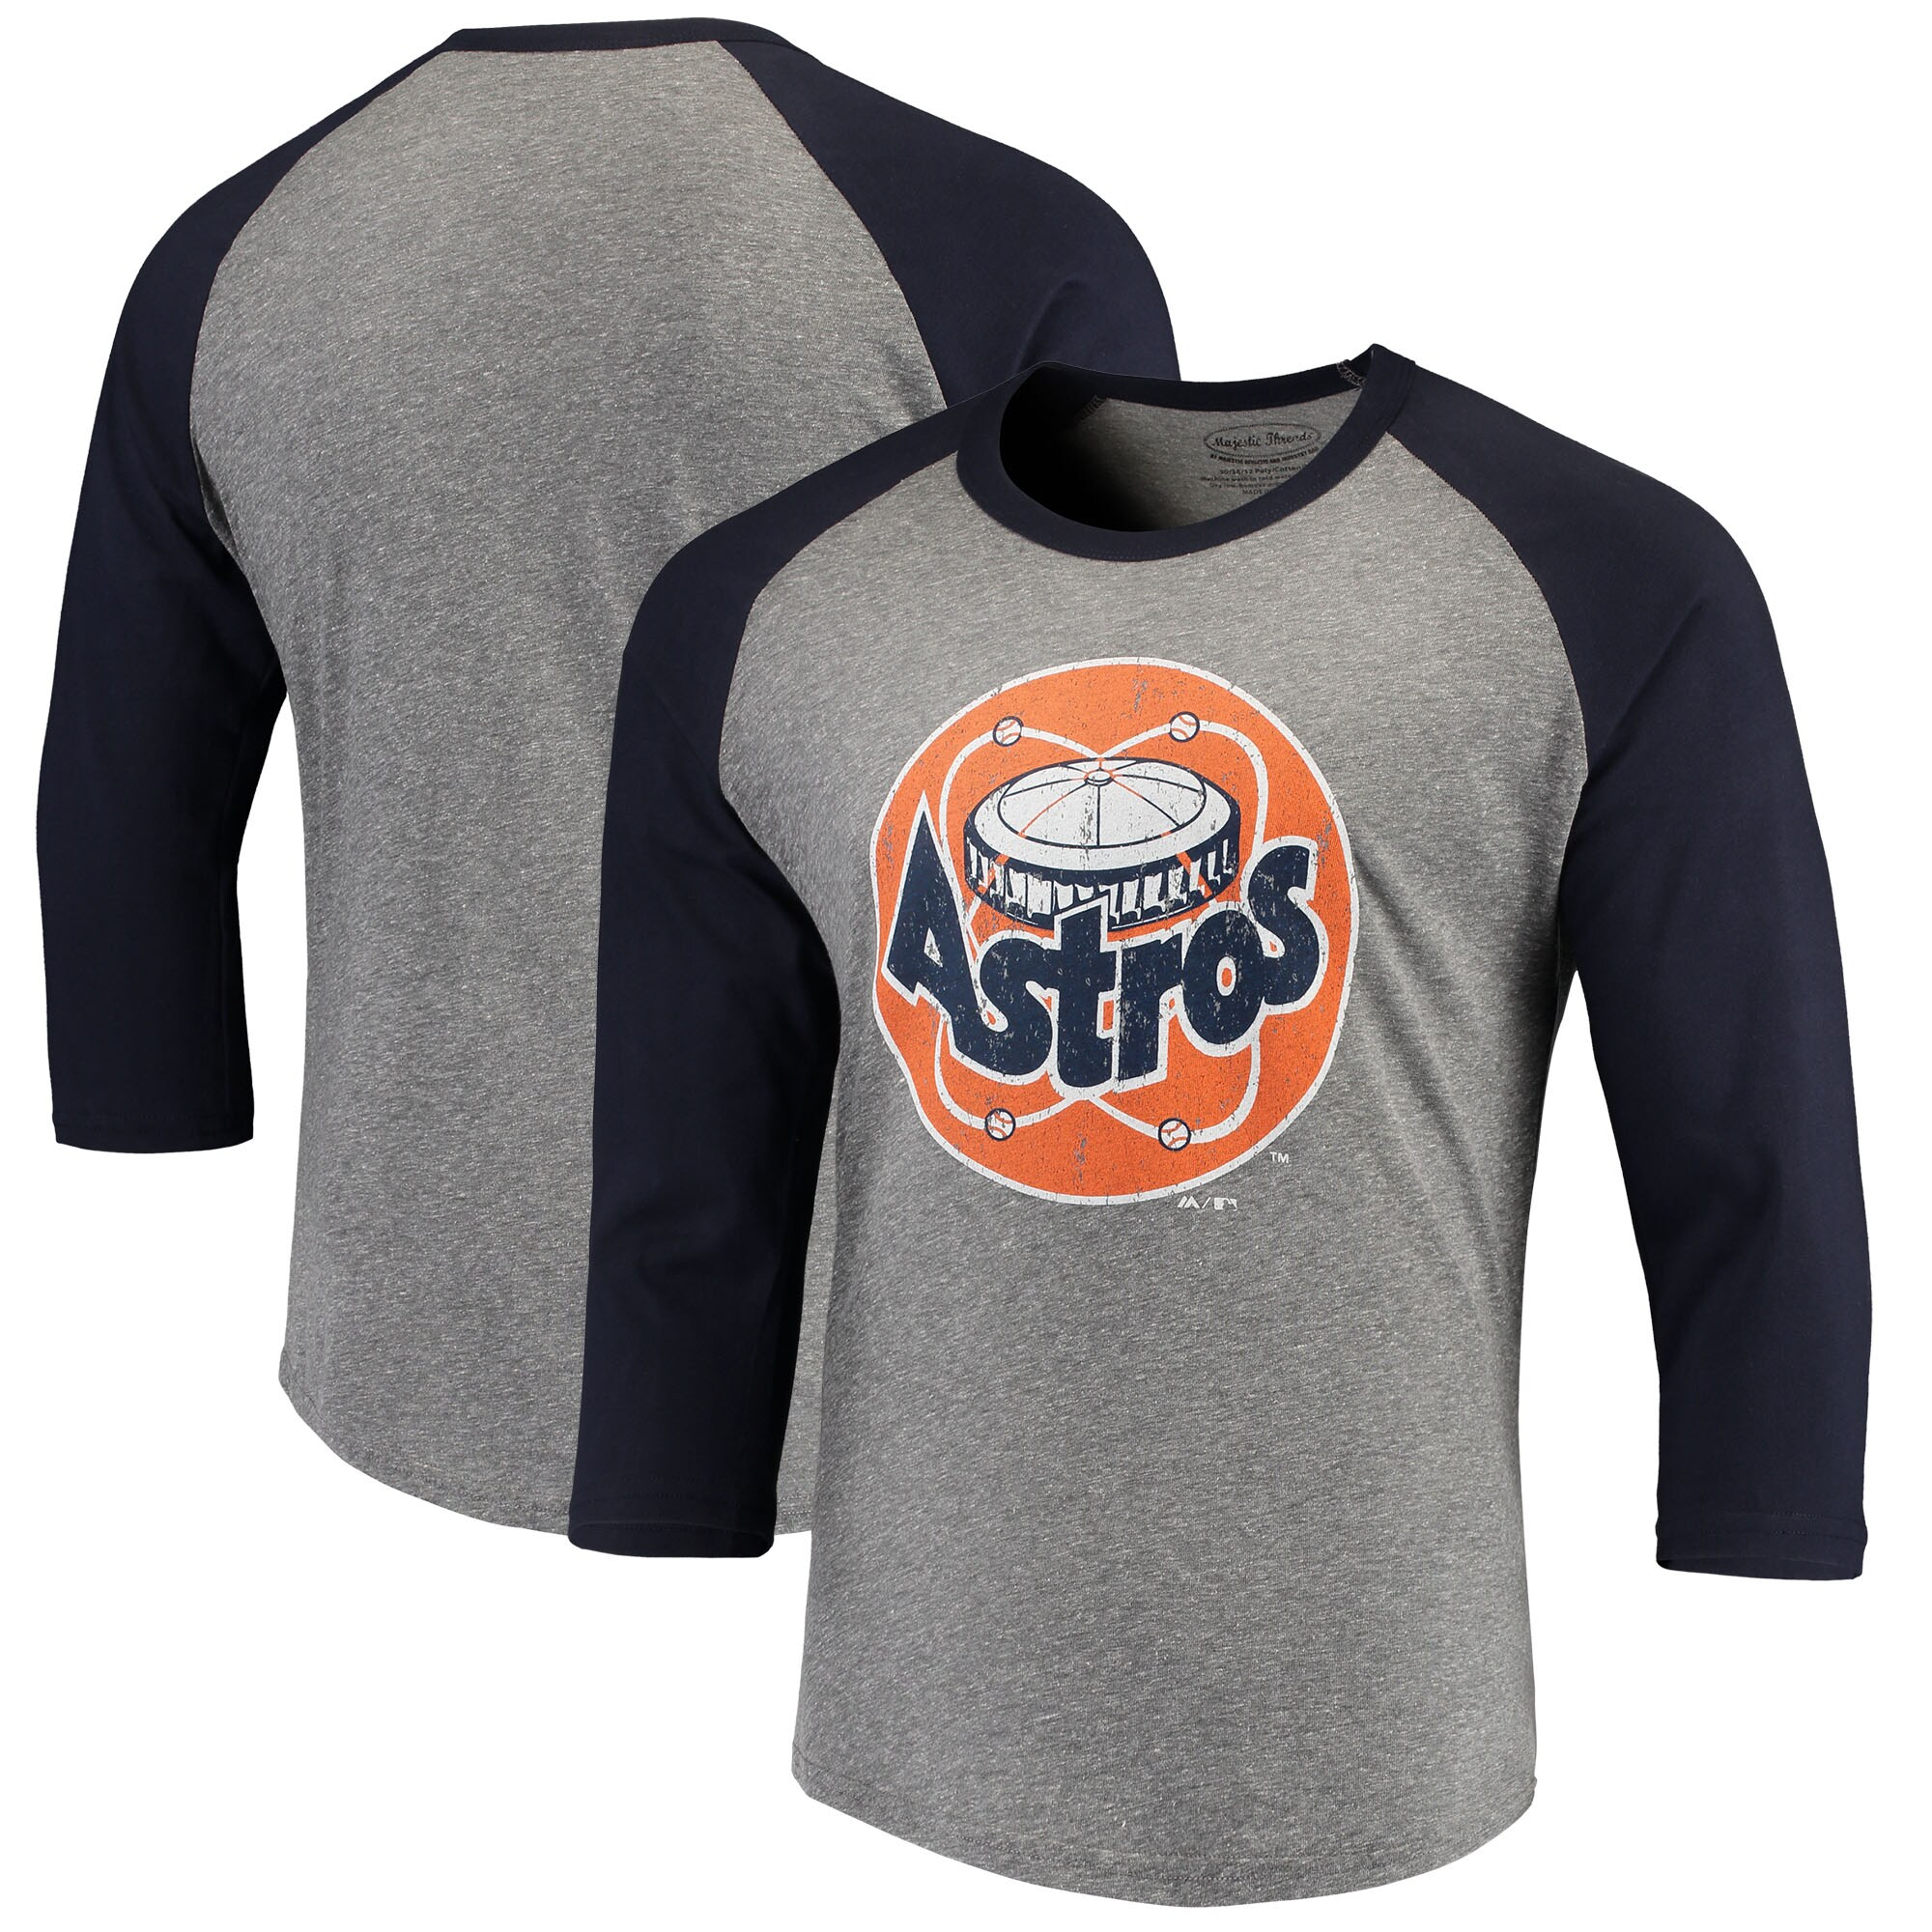 Houston Astros Majestic Threads Cooperstown Collection 3/4-Sleeve Raglan Tri-Blend T-Shirt - Heathered Gray/Navy